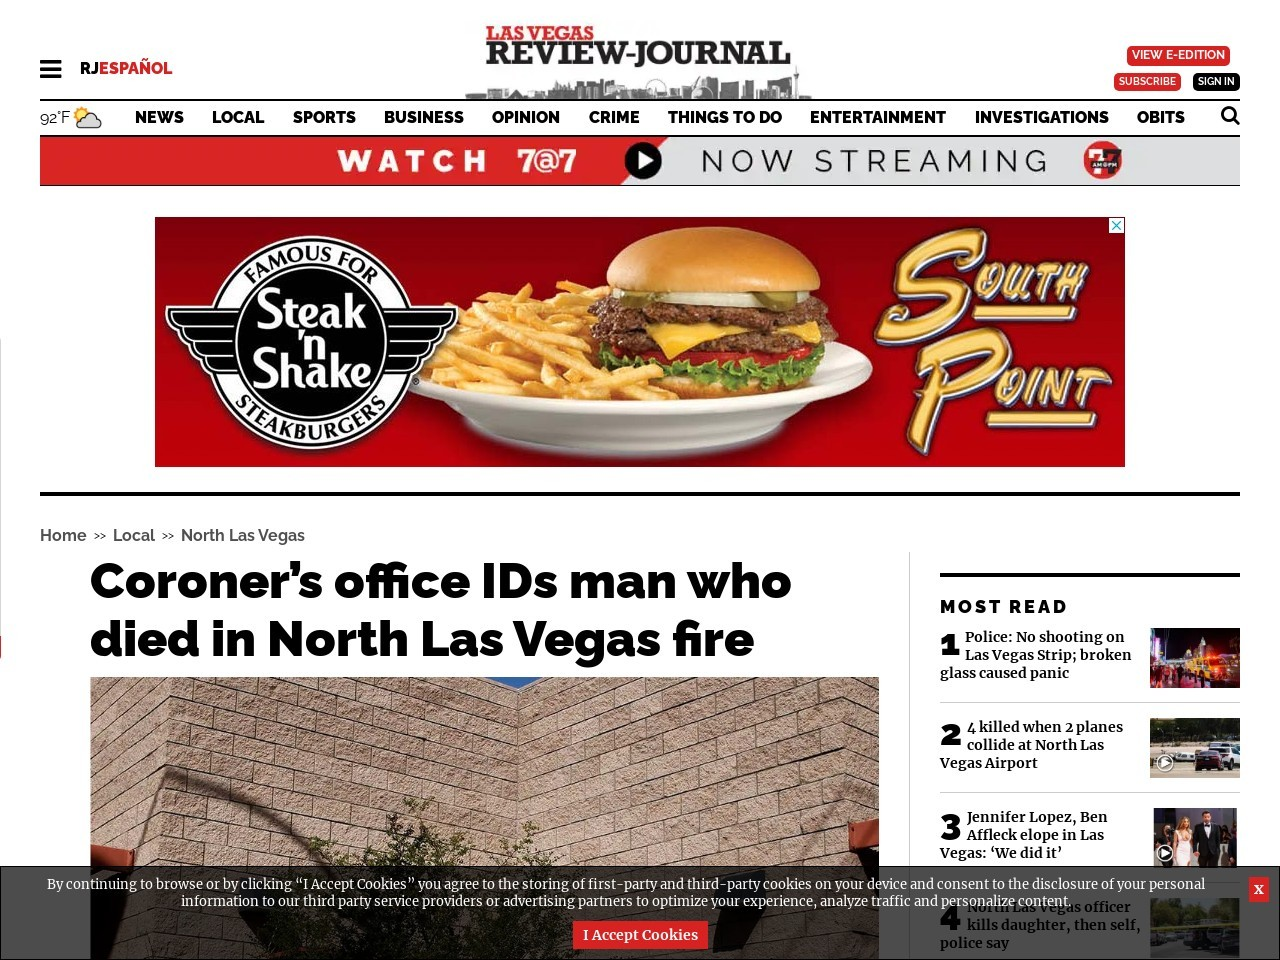 Coroner's office IDs man who died in North Las Vegas fire